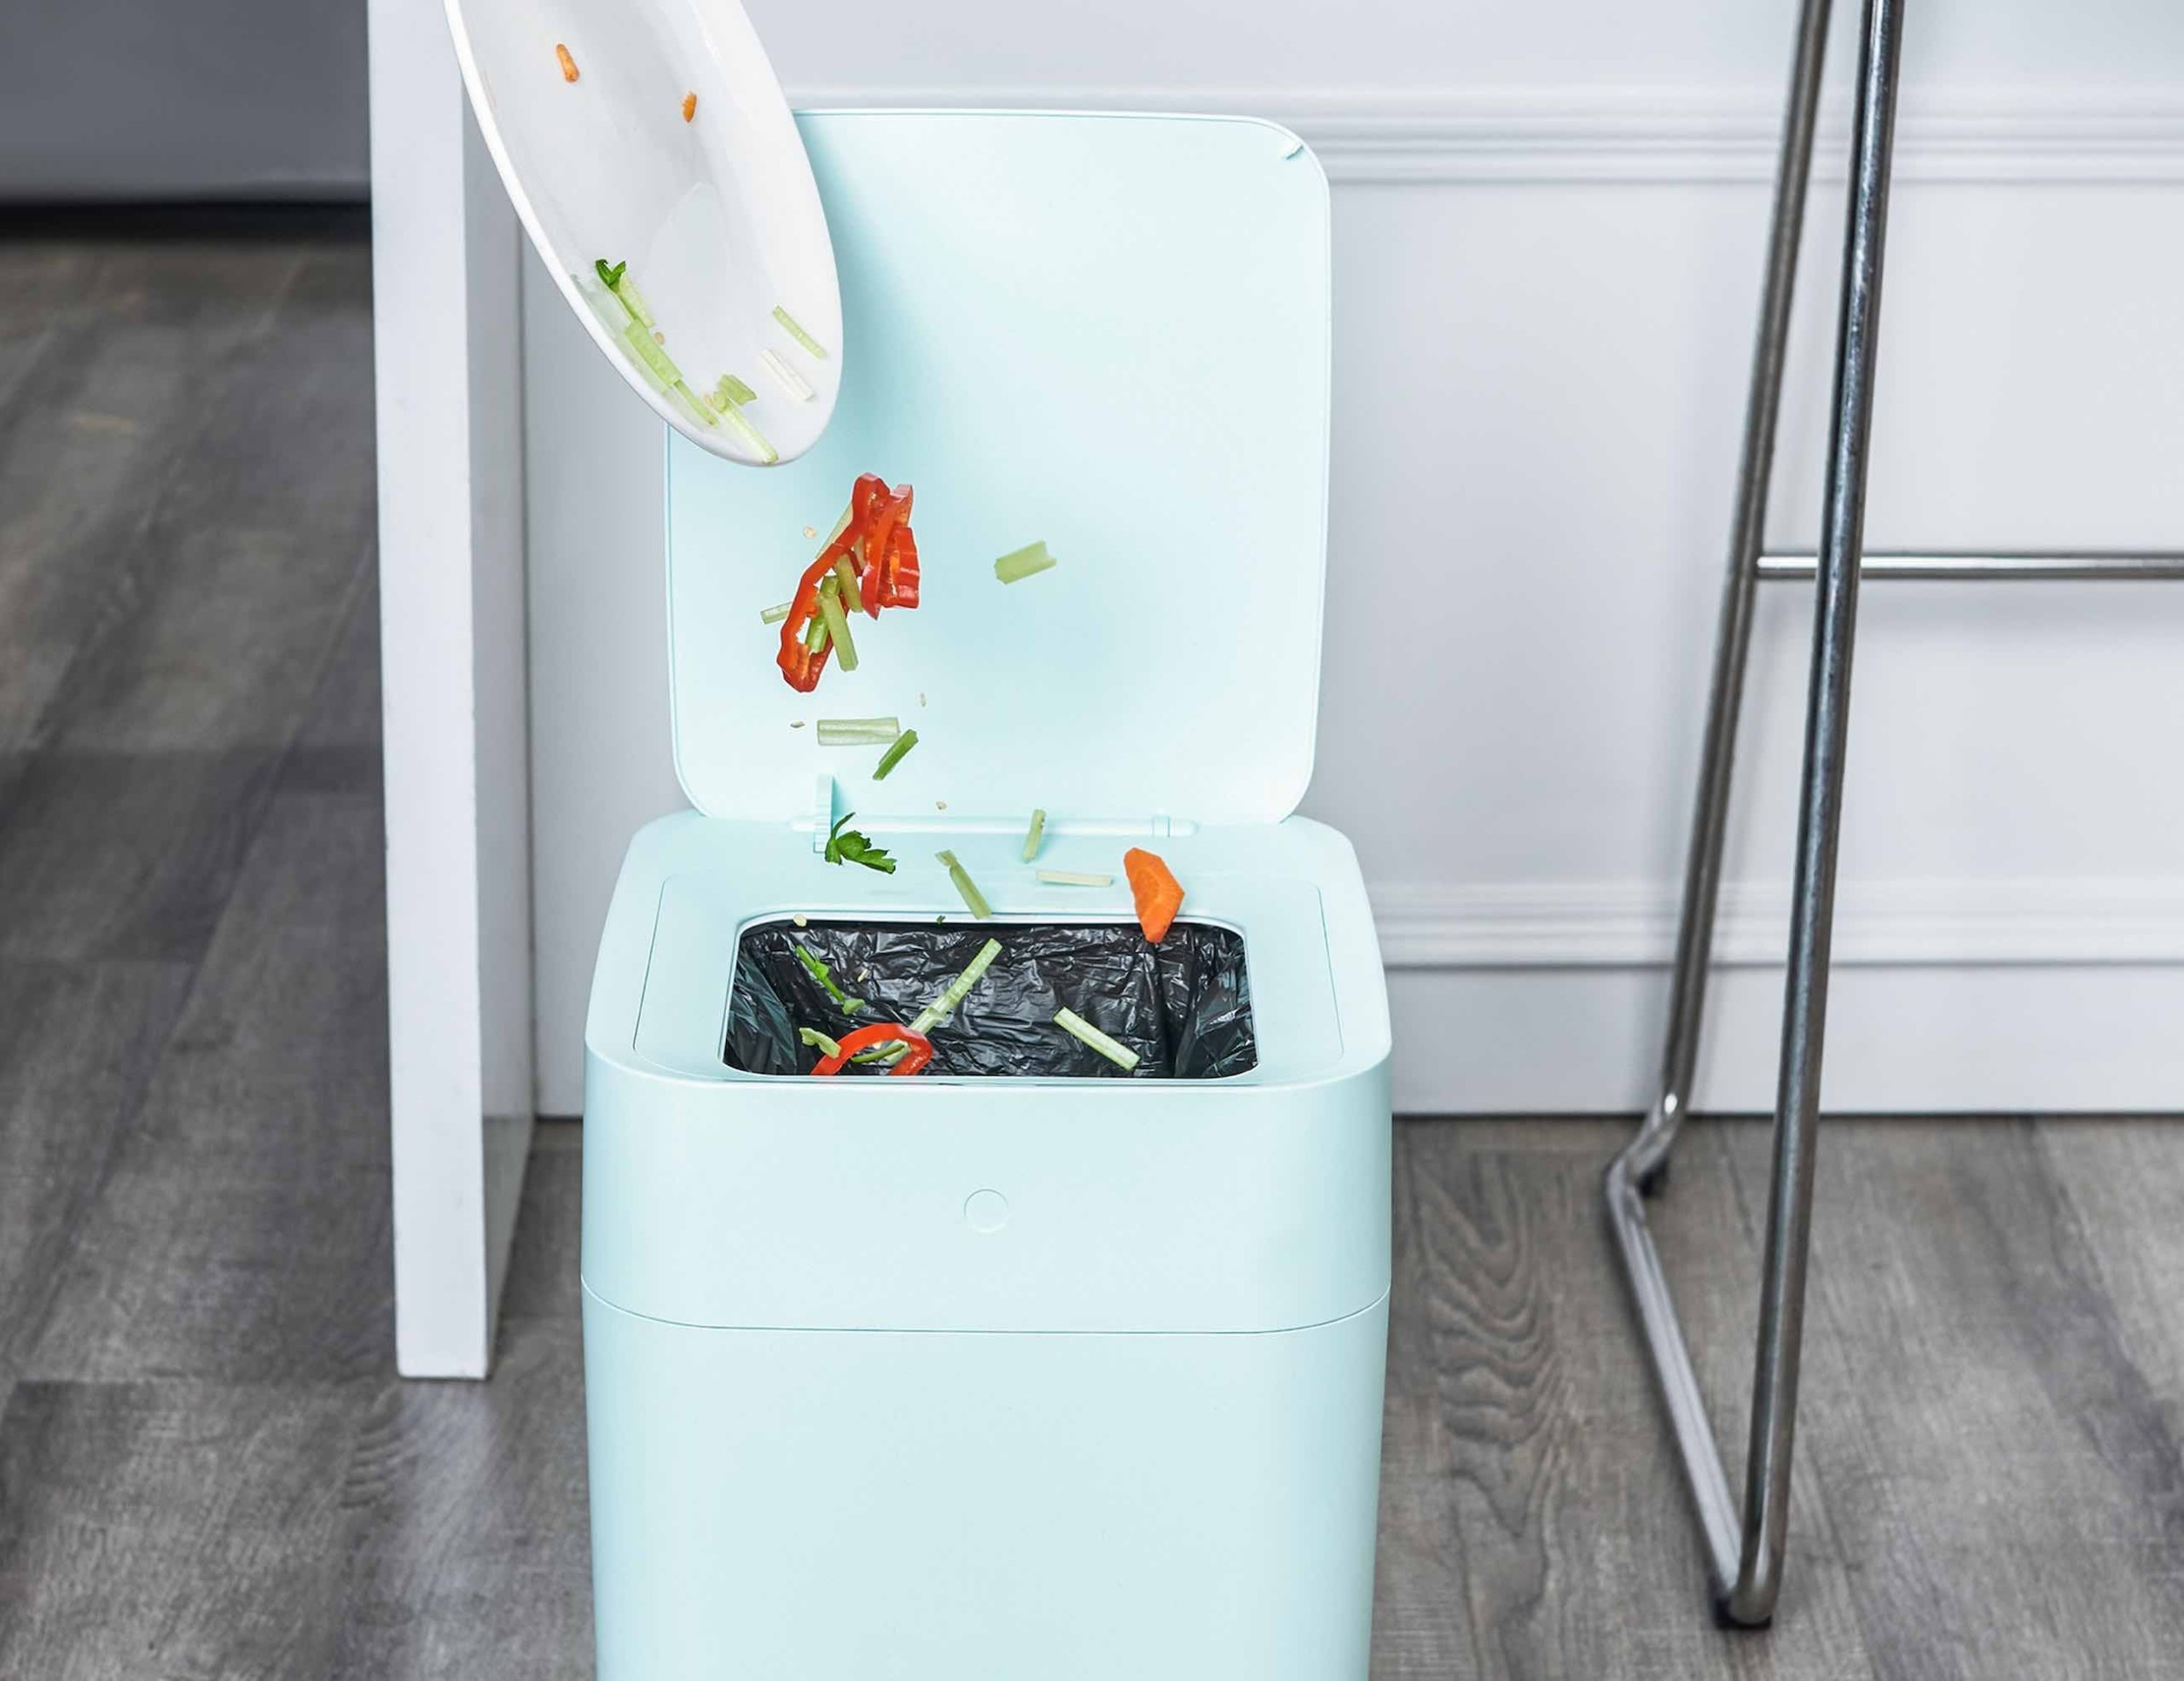 townew Self-Changing Trash Can seals garbage bags so you don't have to deal with odors or leaks